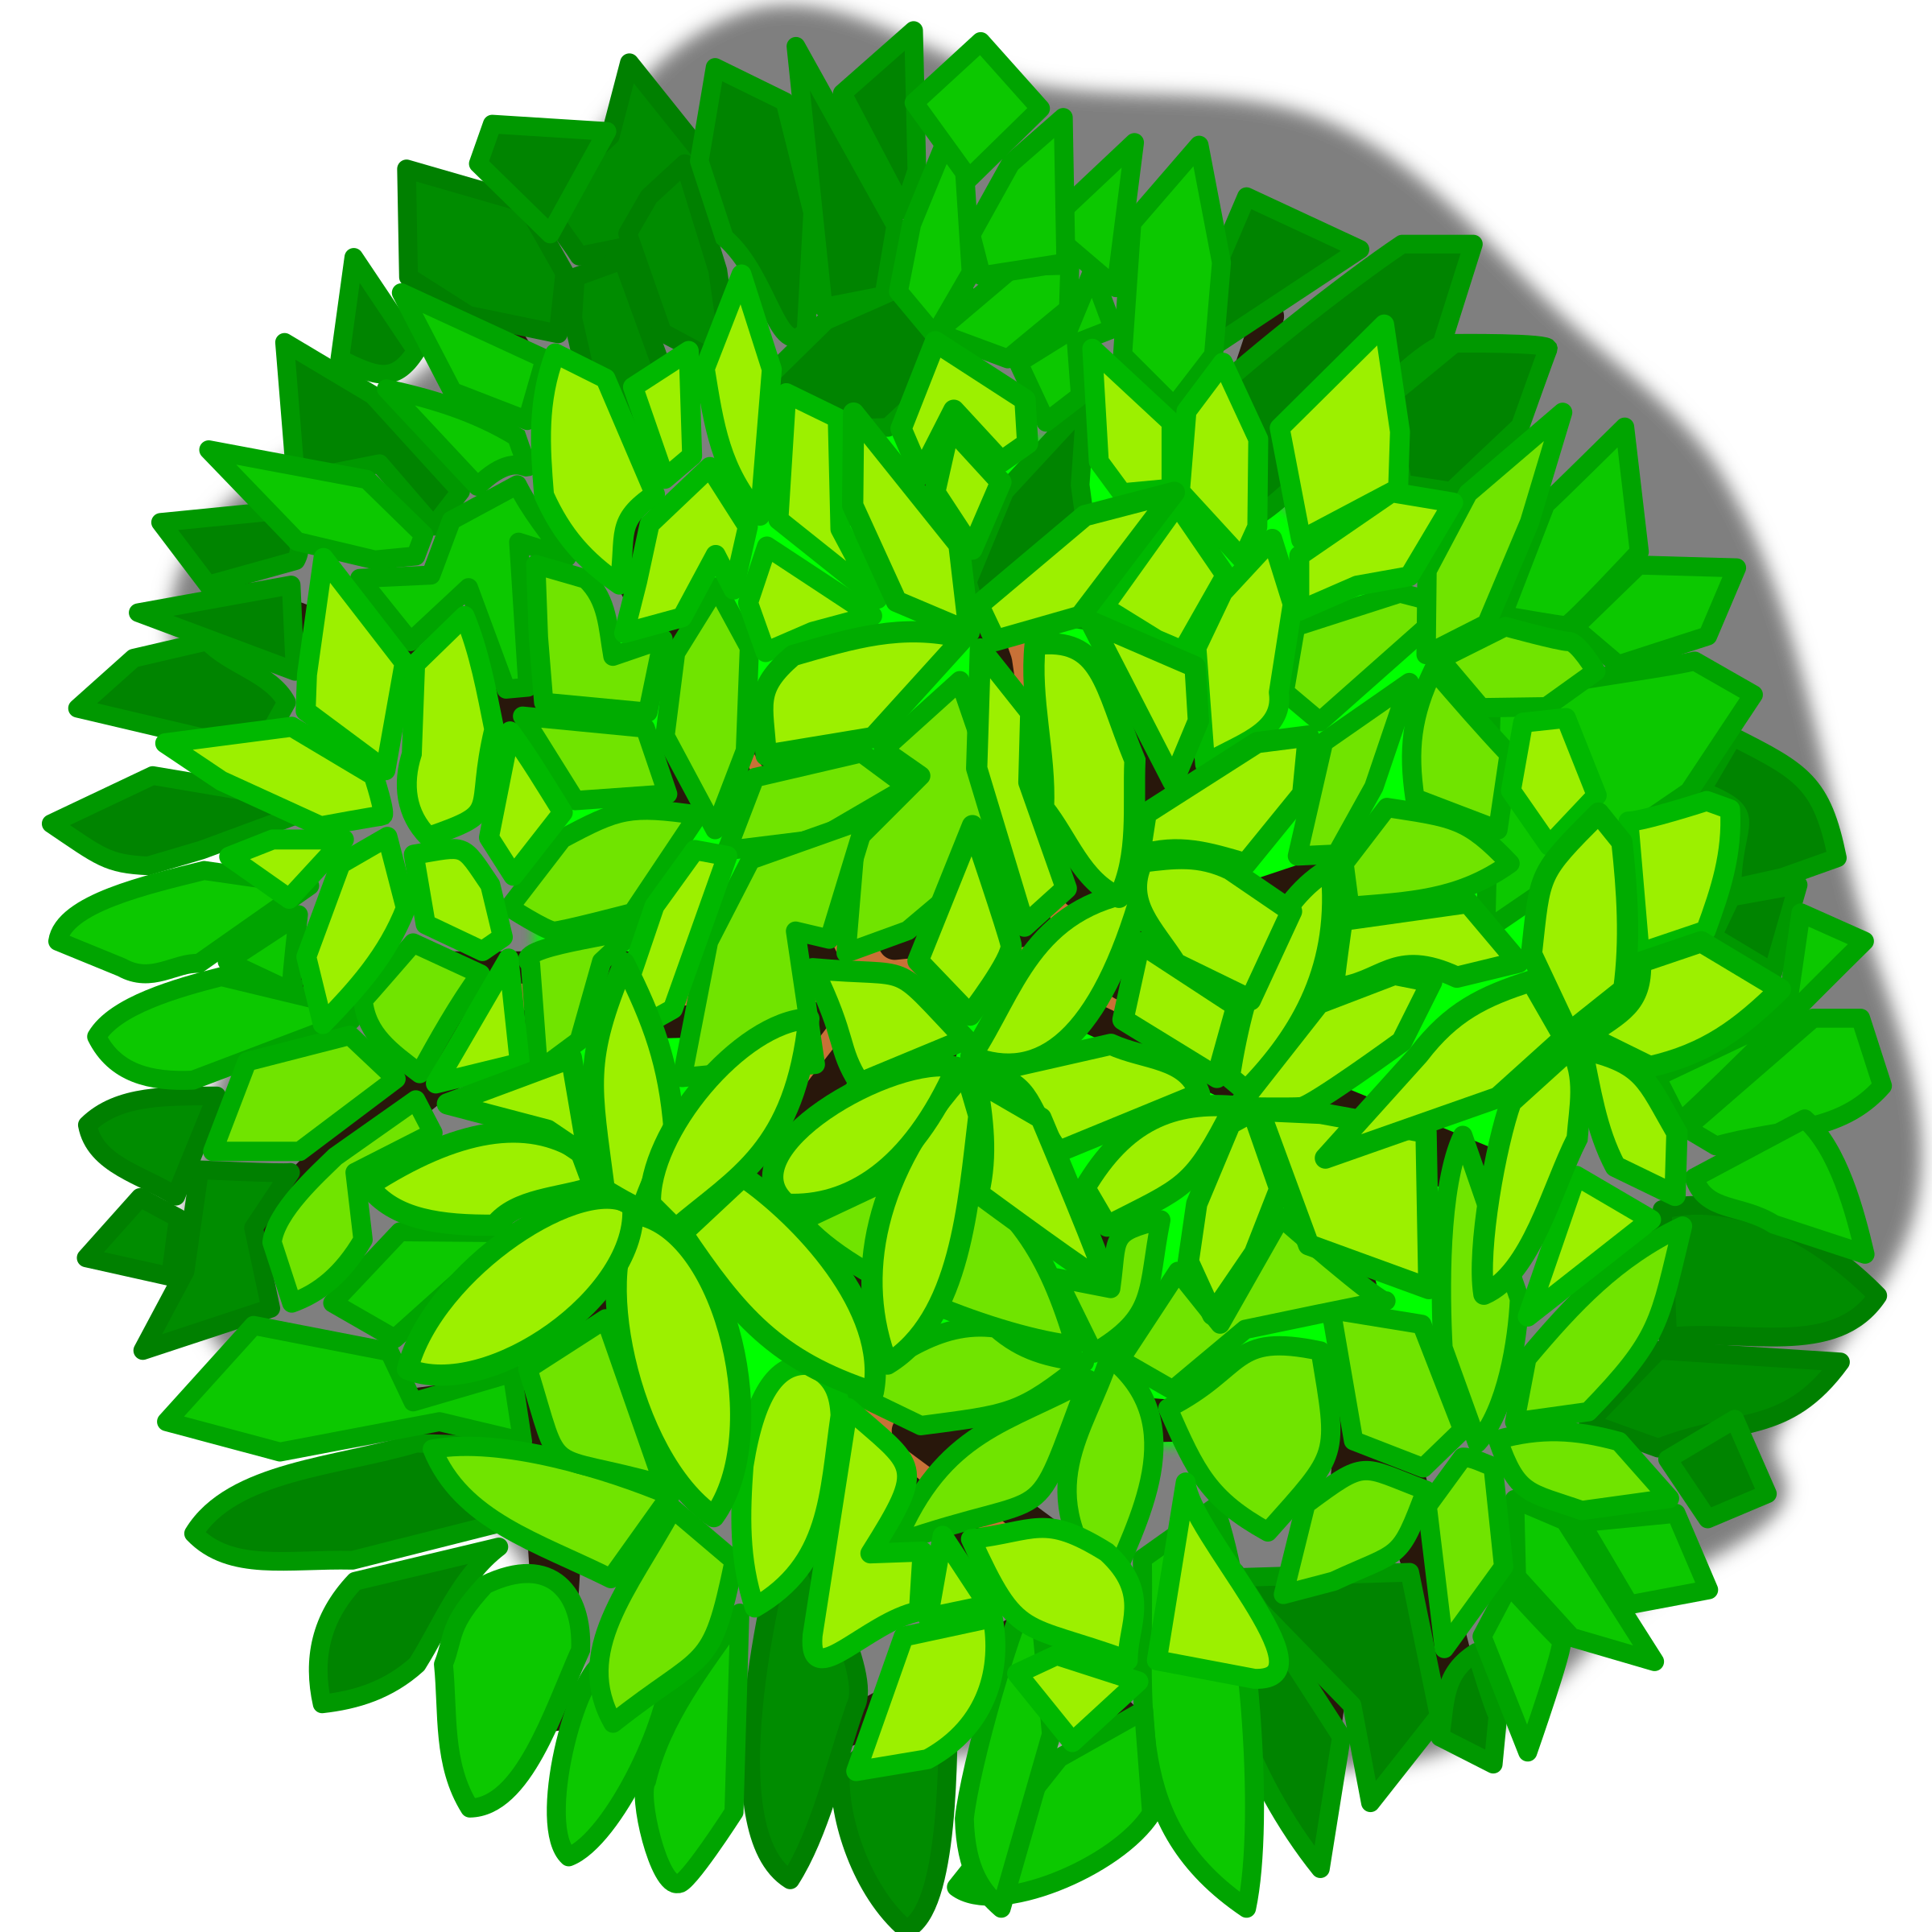 Top of tree clipart image royalty free download Clipart - Tree top view image royalty free download